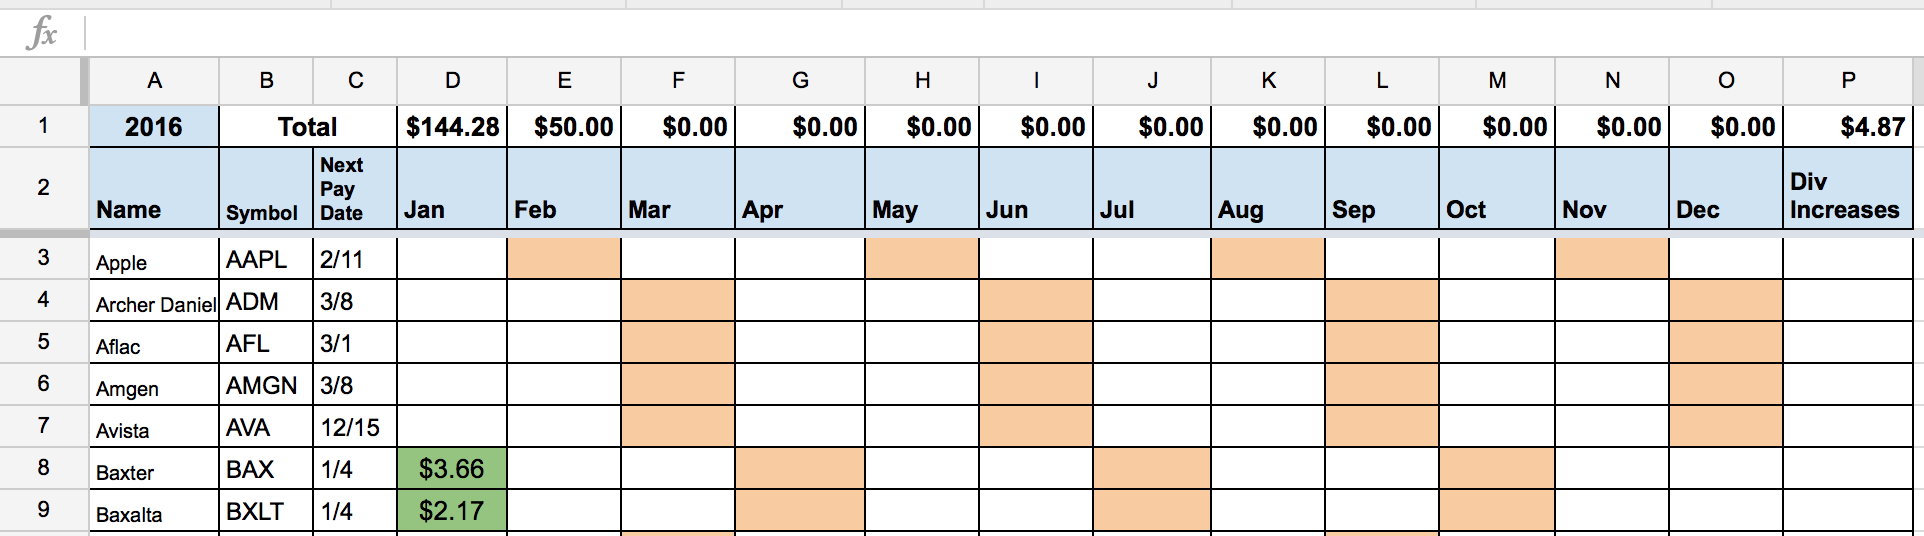 Dividend Income Spreadsheet In Dividend Stock Portfolio Spreadsheet On Google Sheets – Two Investing